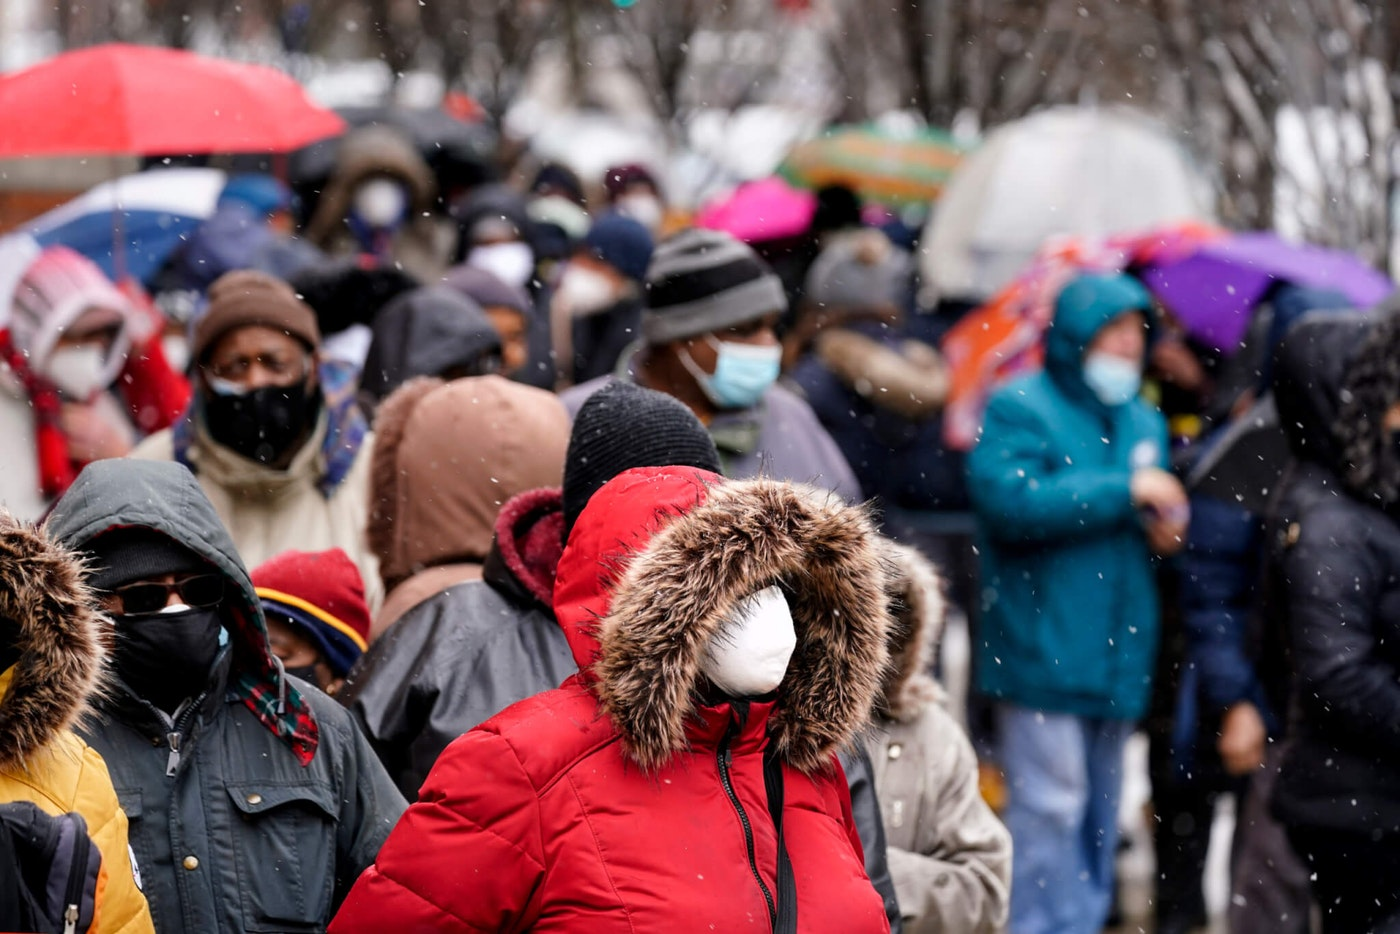 People wait in line at a 24-hour, walk-up COVID-19 vaccination clinic hosted by the Black Doctors COVID-19 Consortium at Temple University's Liacouras Center in Philadelphia, Friday, Feb. 19, 2021. (AP Photo/Matt Rourke)